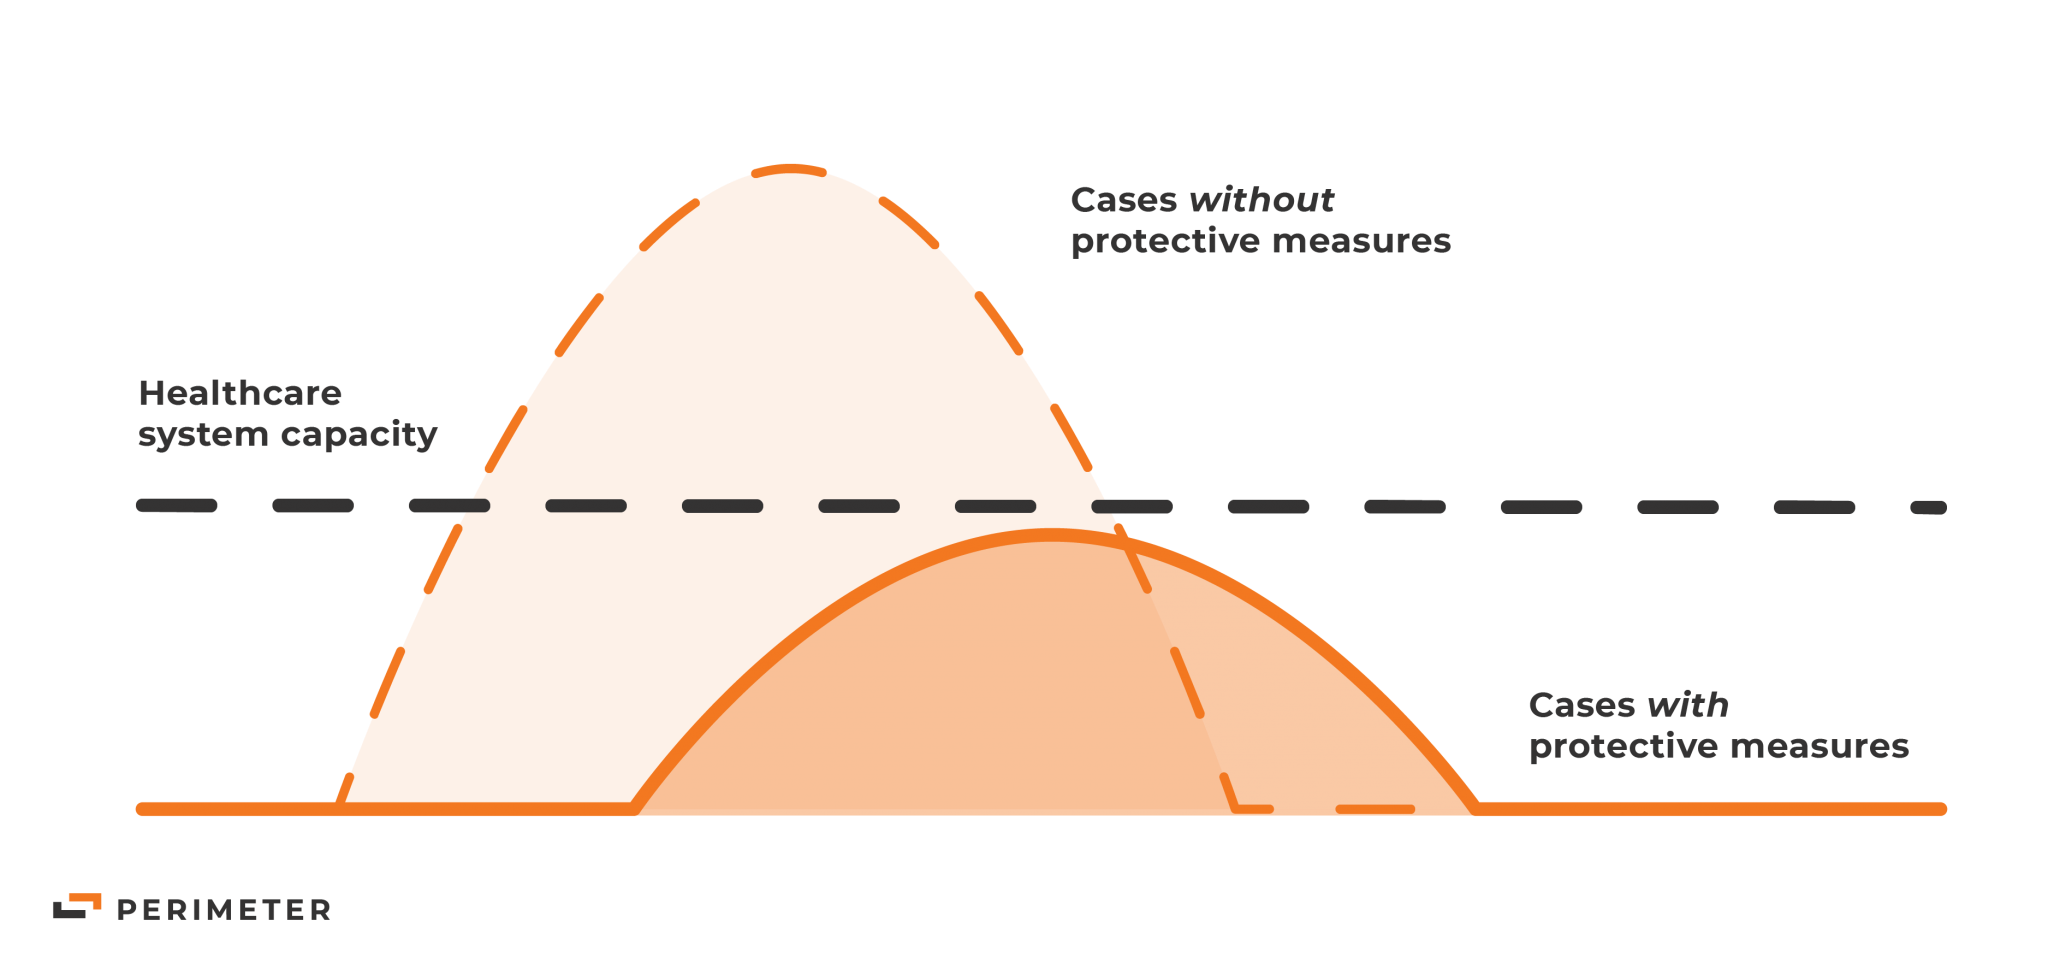 This visualization of flattening the curve shows the benefit of social distancing. The left-most peak shows the volume of cases without engaging protective measures against COVID-19. The right-most peak shows the volume of cases with those protective measures in place. The center line indicates the total healthcare system capacity.